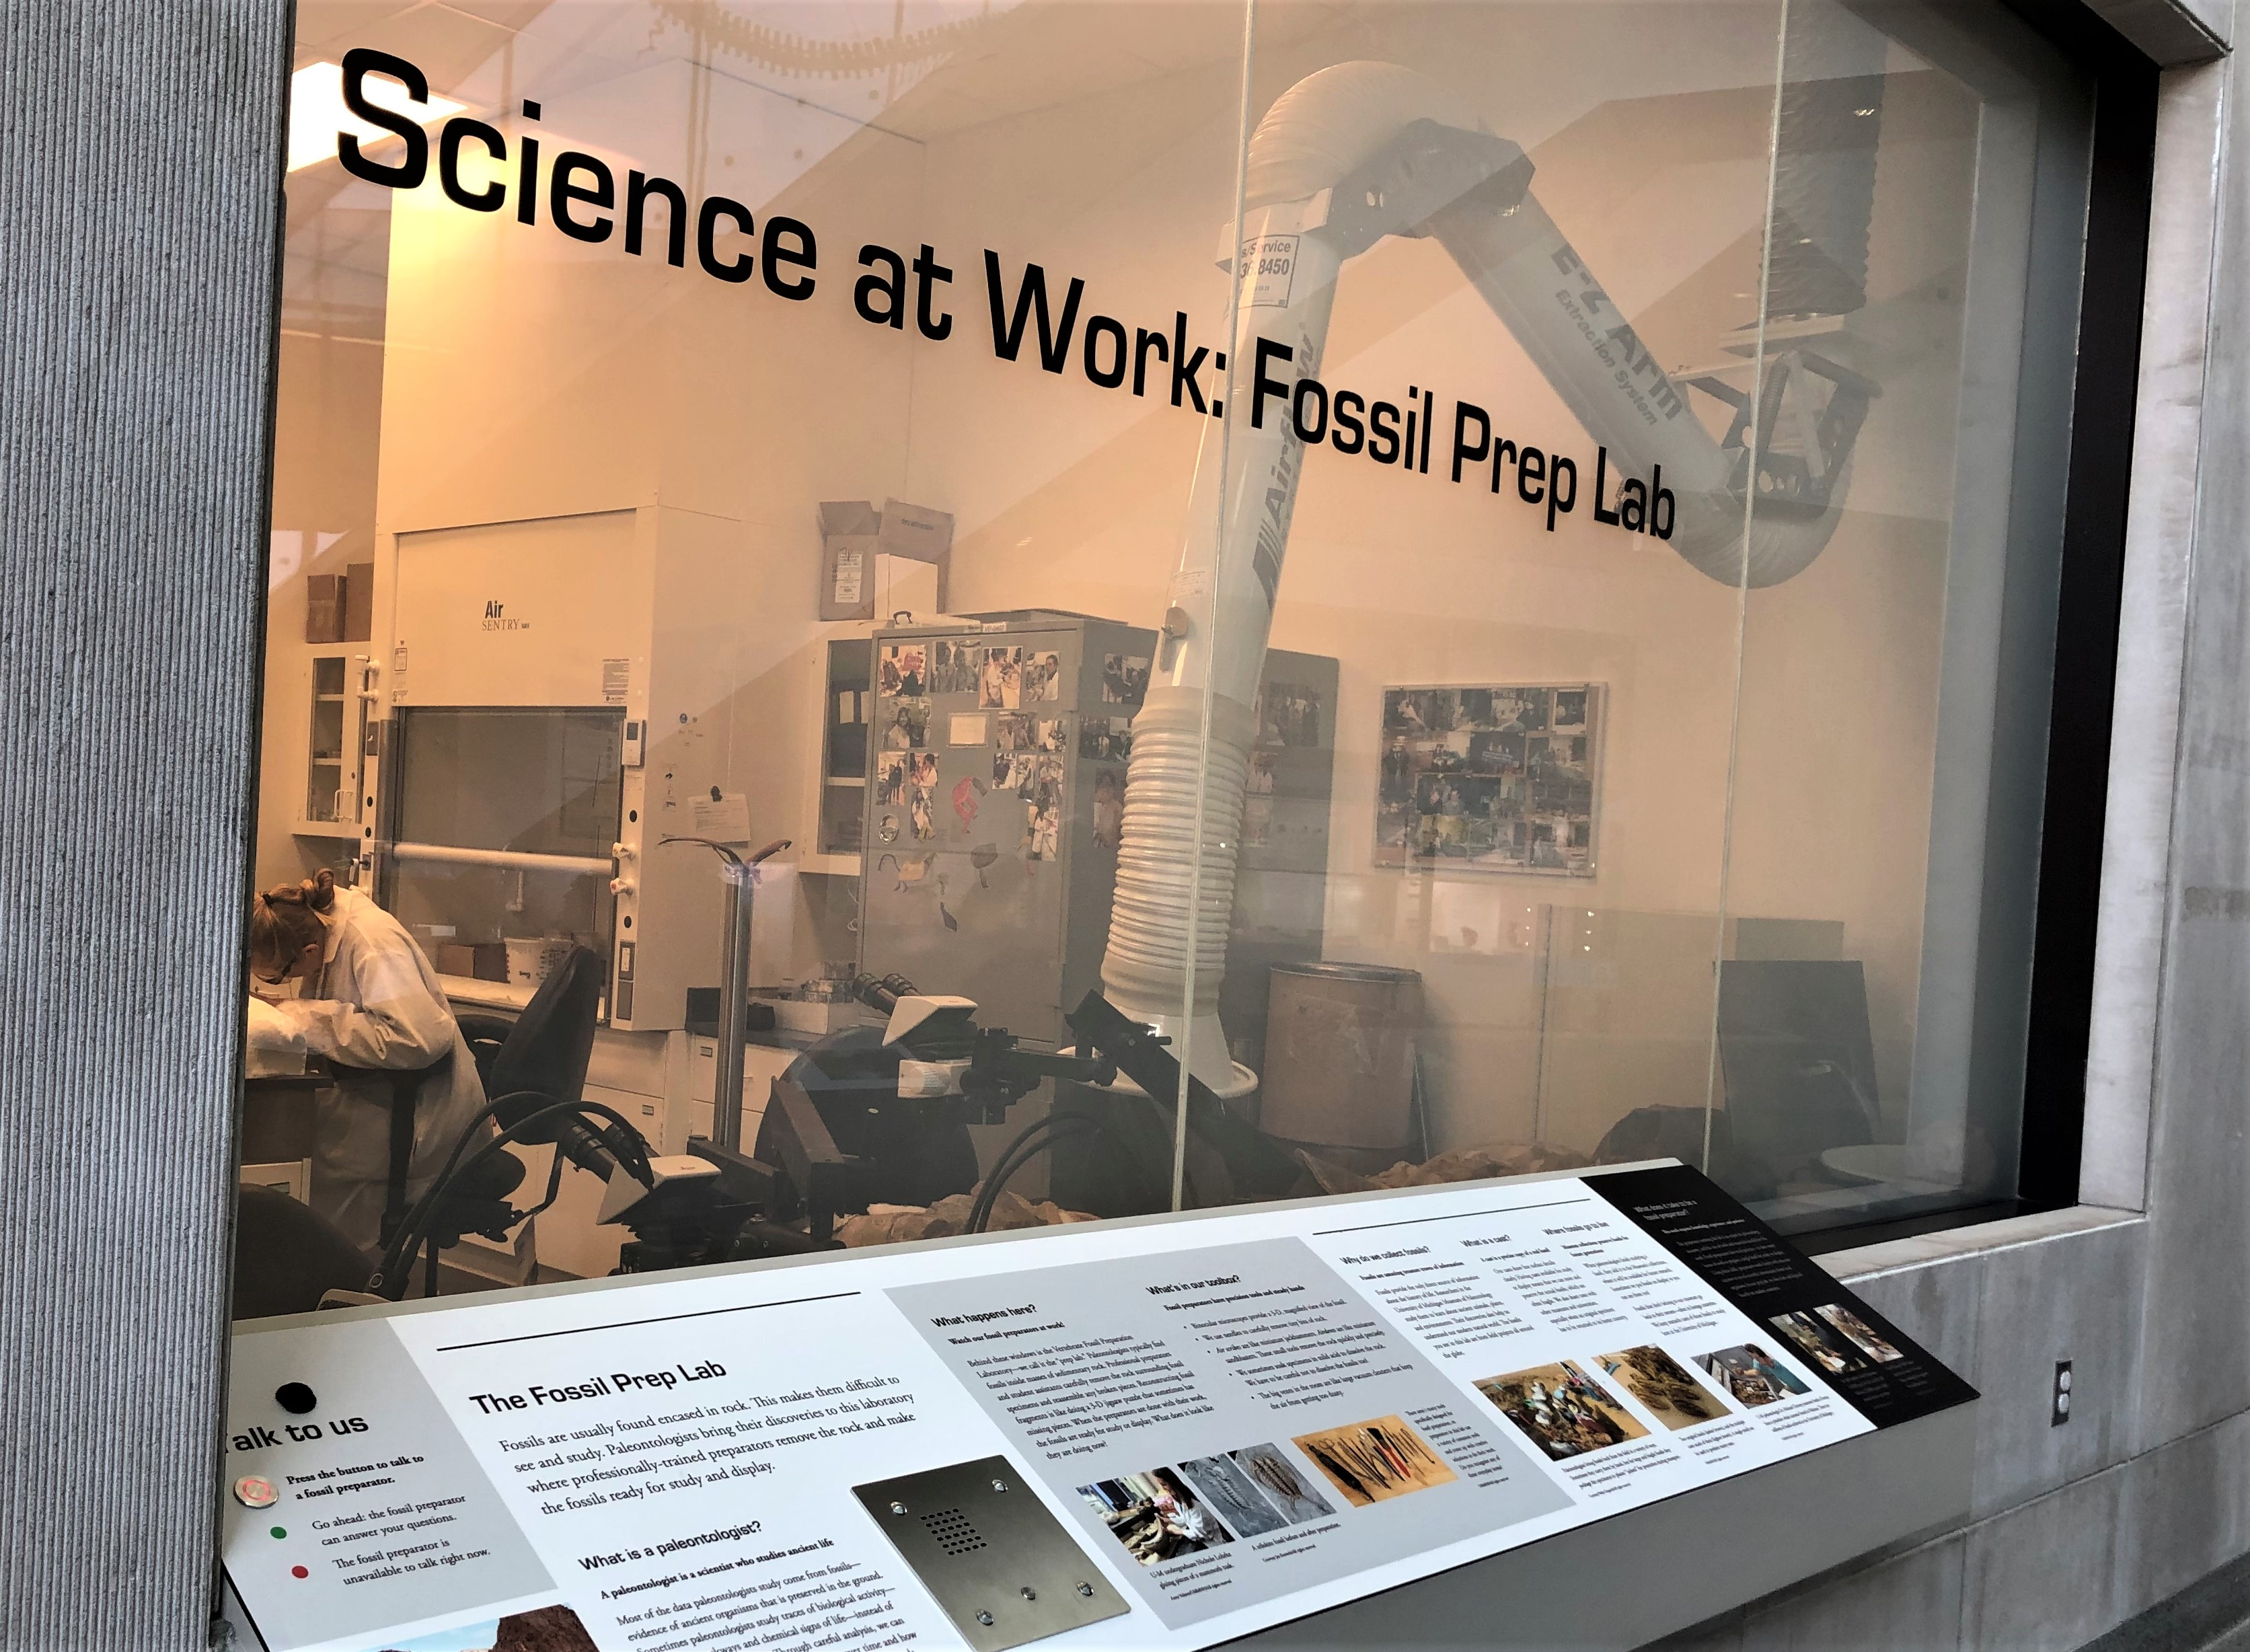 Watch Science at Work in the Fossil Prep Lab at the University of Michigan Museum of Natural History, one of many free things to do in Ann Arbor MI.